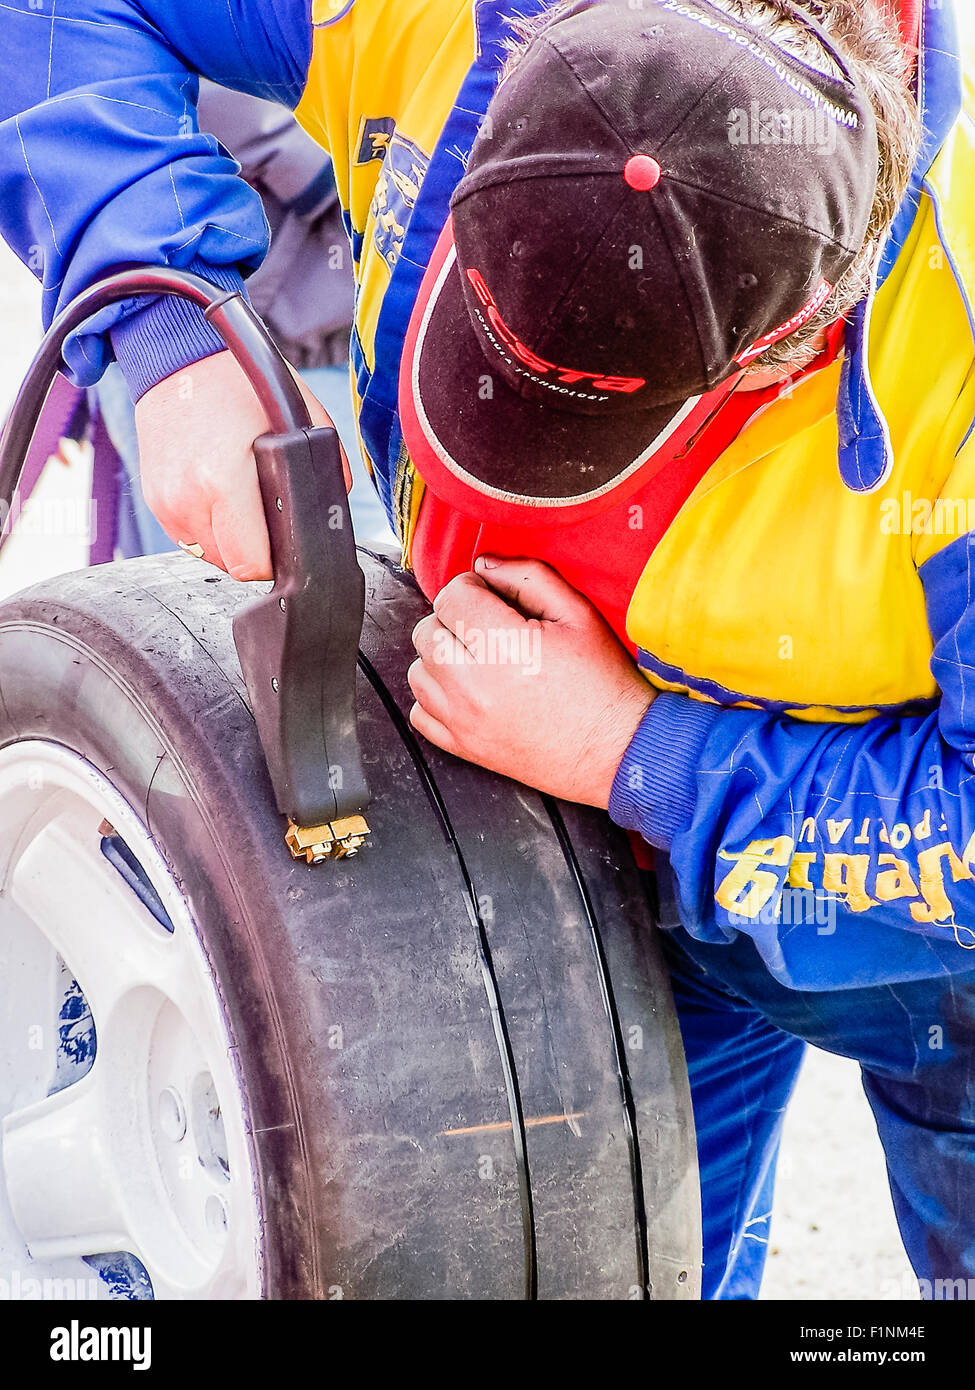 A mechanic uses a heat gun to re cut treads to add tread to a slick worn tyre - Stock Image